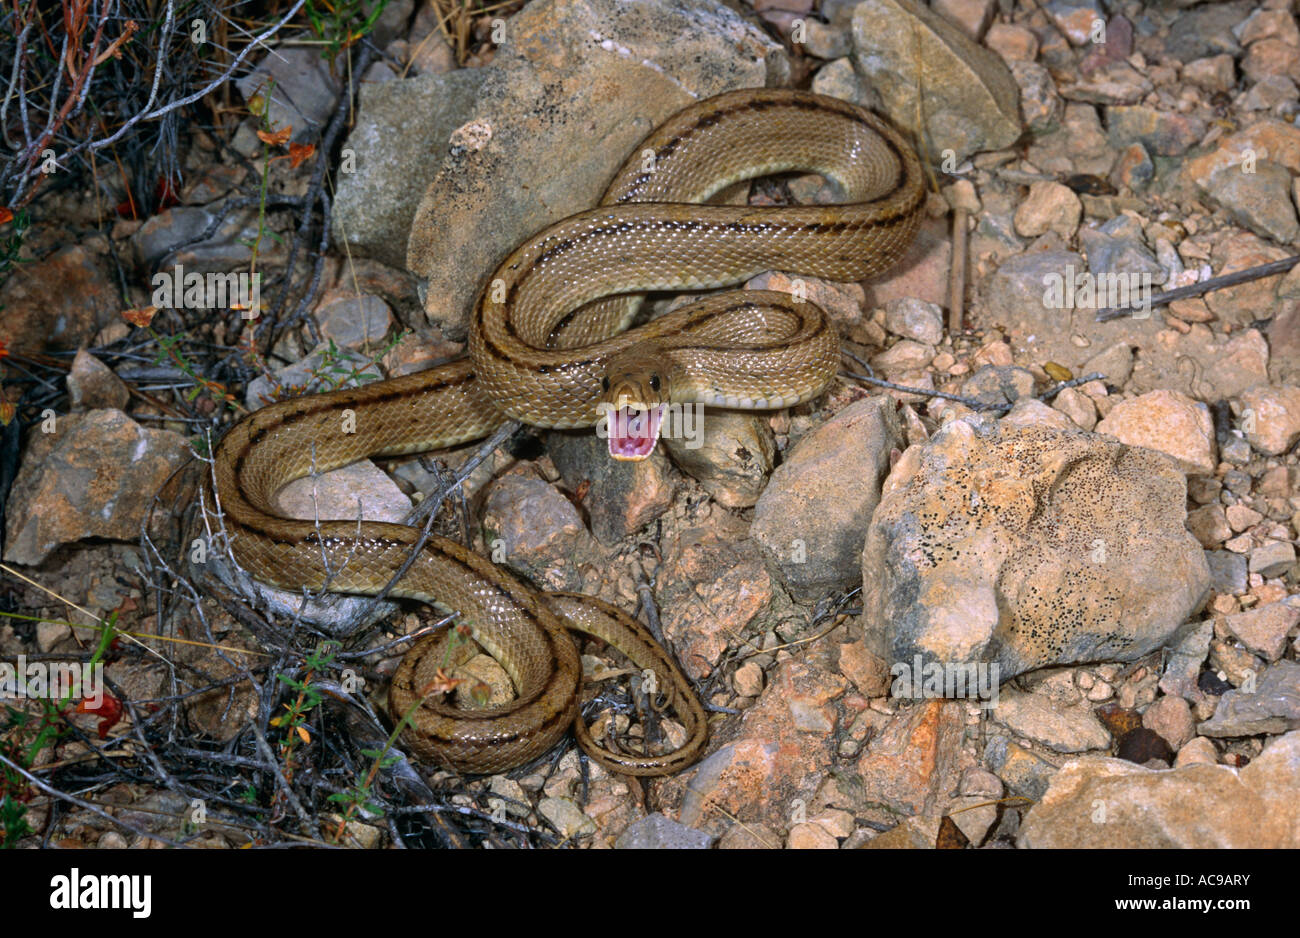 Ladder snake in defensive posture Elaphe scalaris Alicante Spain - Stock Image